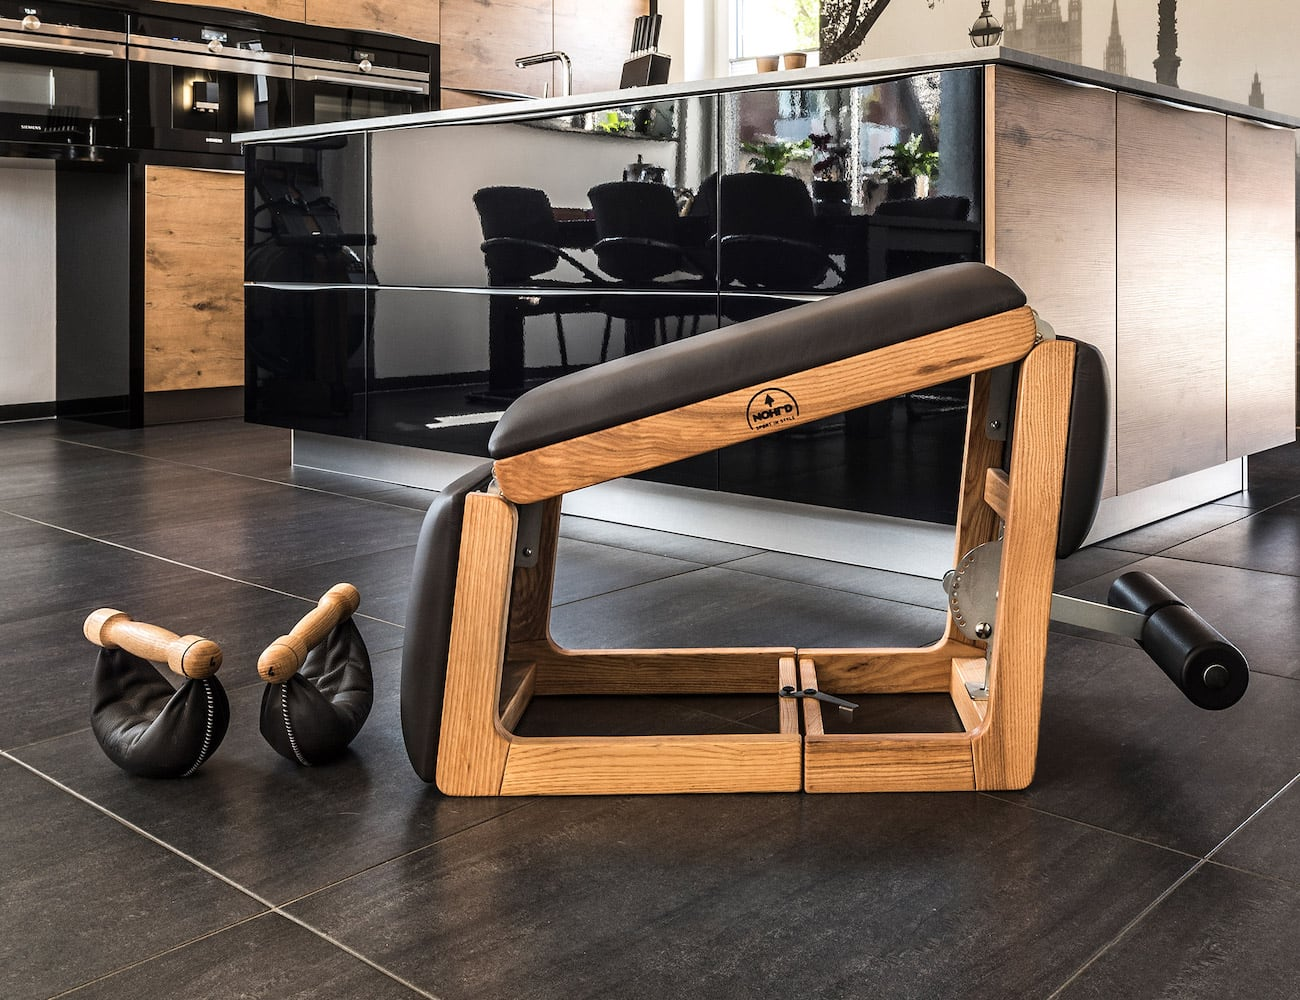 NOHrD TriaTrainer 3-in-1 Minimalist Home Exercise Machine works out your abs and back